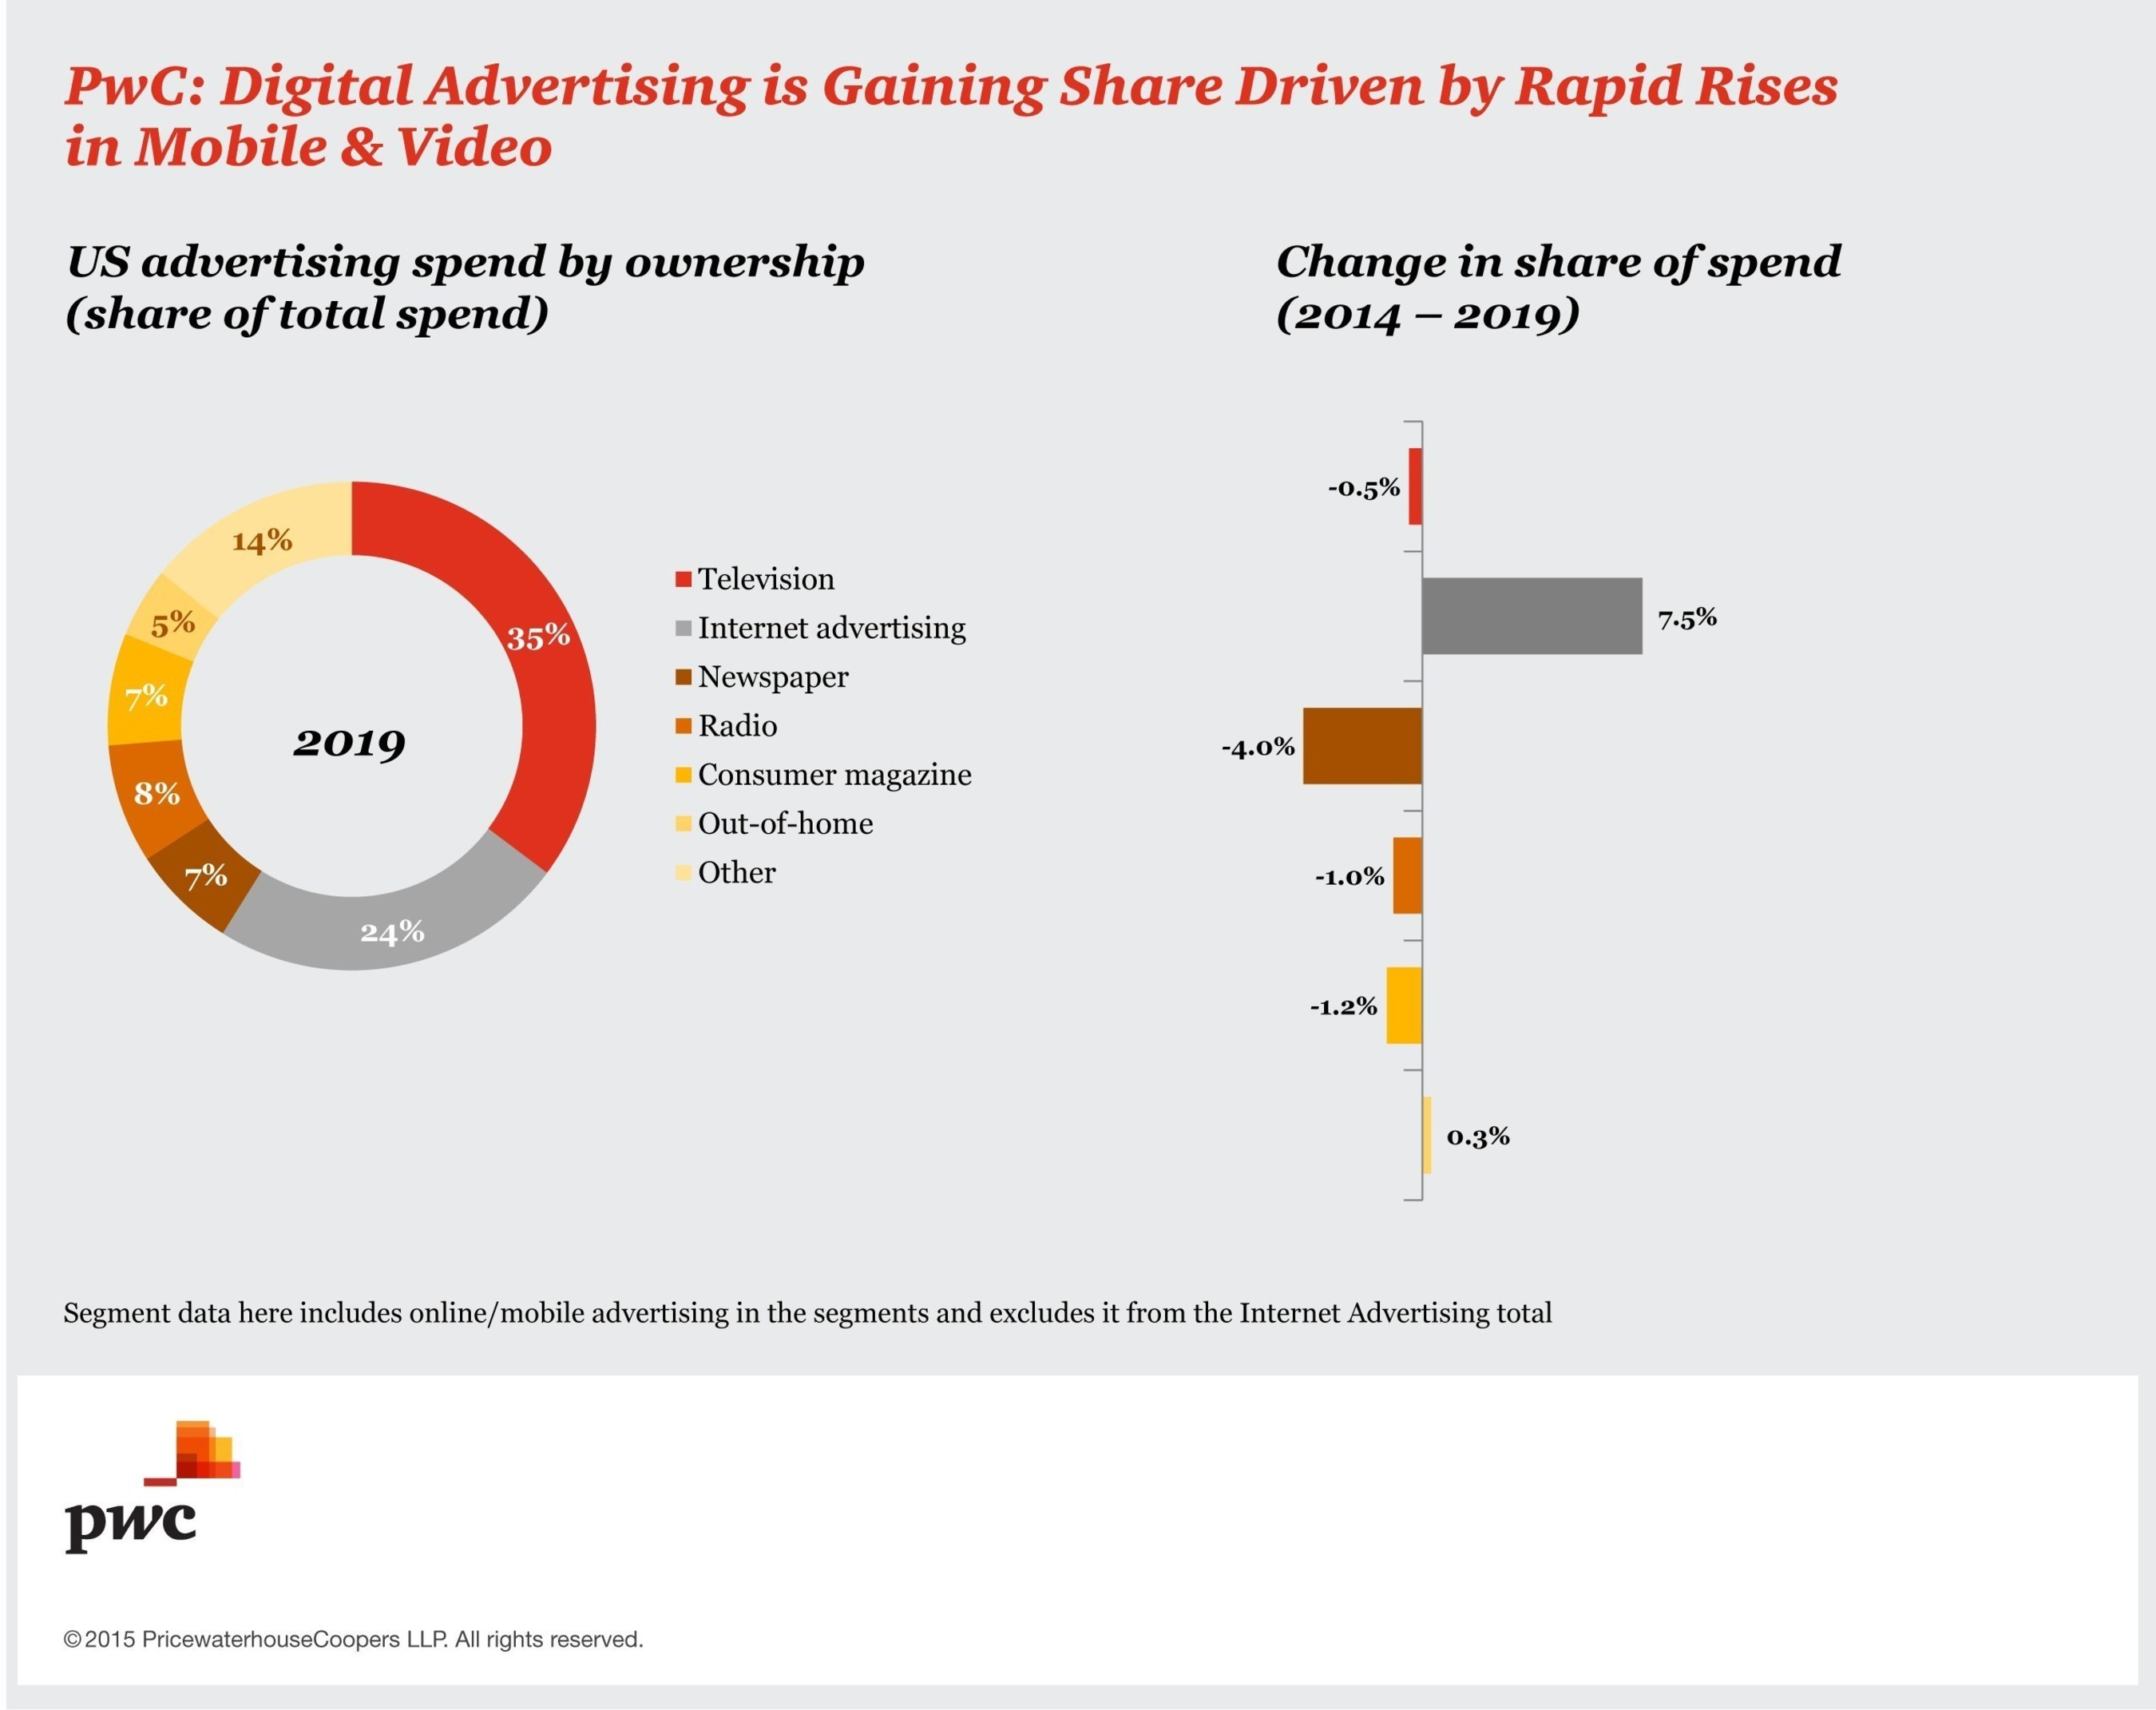 PwC: Digital Advertising is Gaining Share Driven by Rapid Rises in Mobile & Video